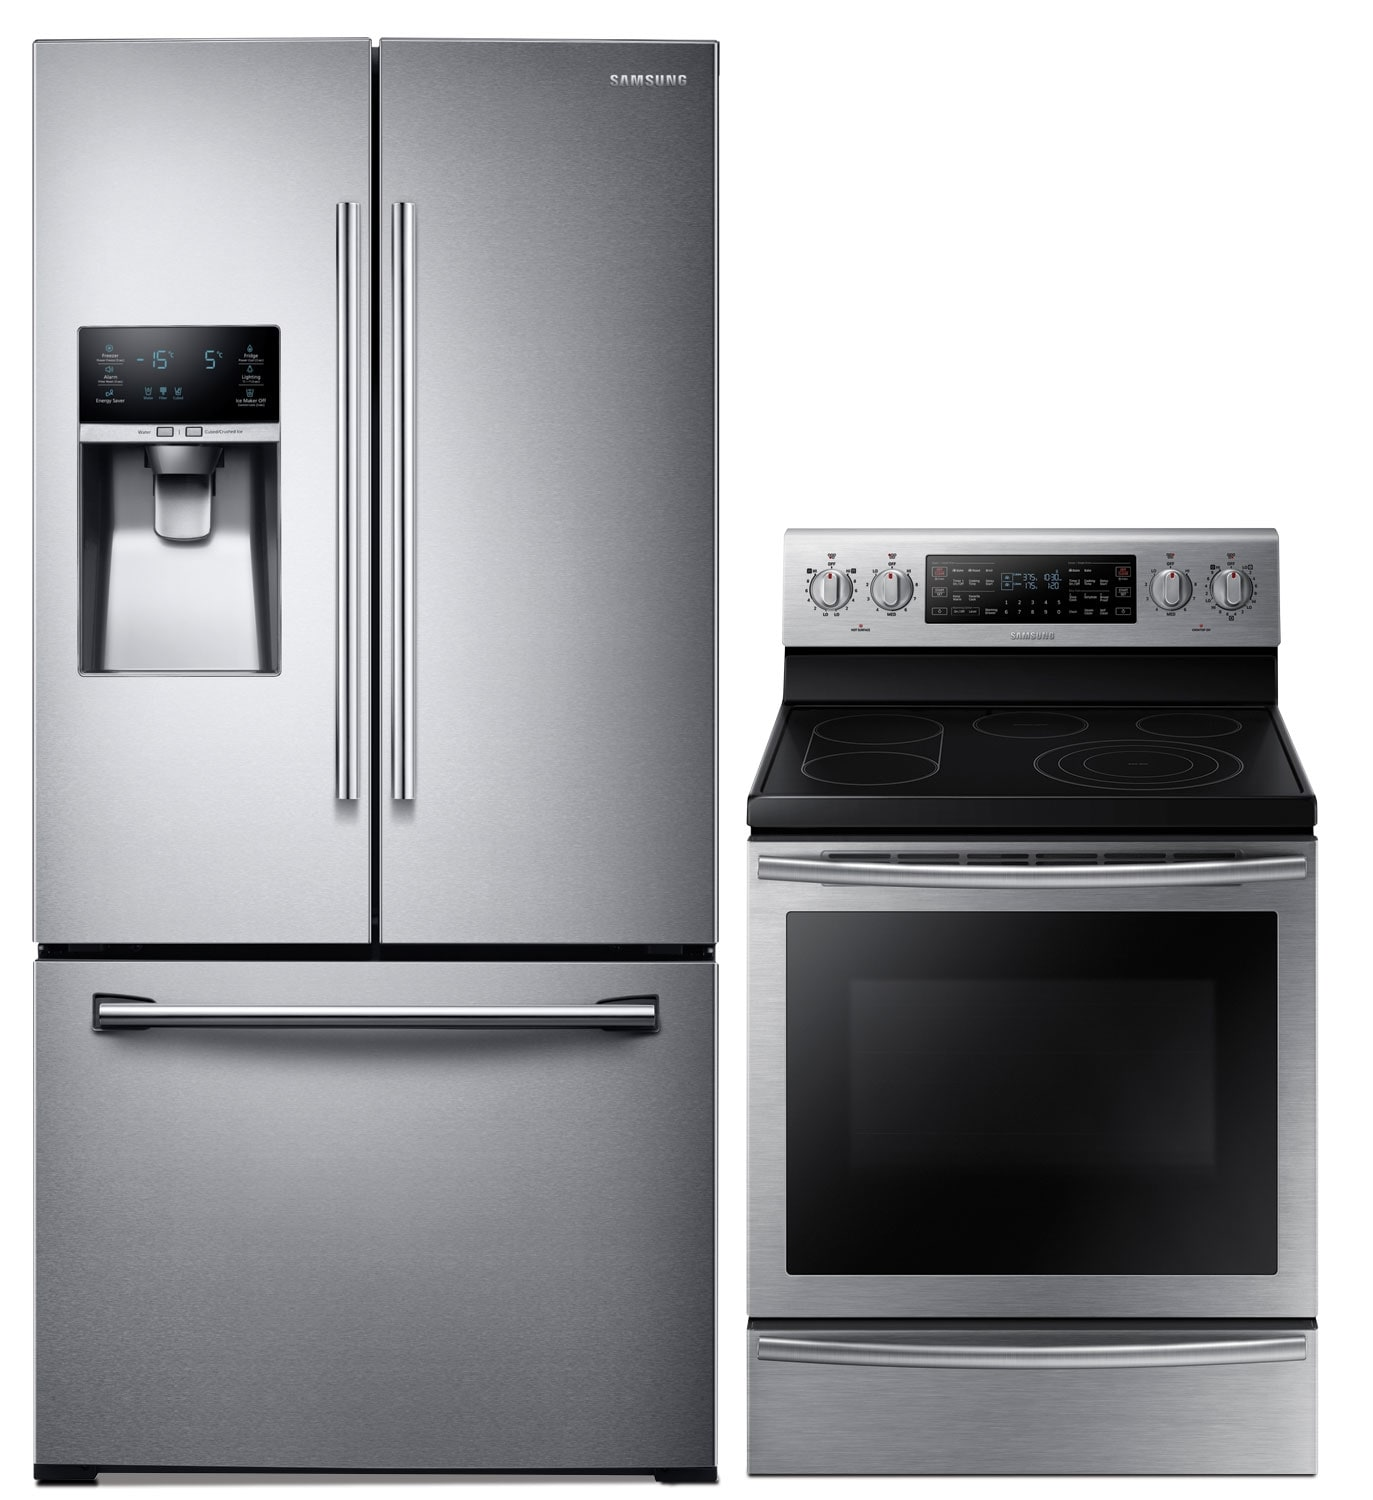 Refrigerators and Freezers - Samsung 25.5 Cu. Ft. Refrigerator and 5.9 Cu. Ft. Electric Range